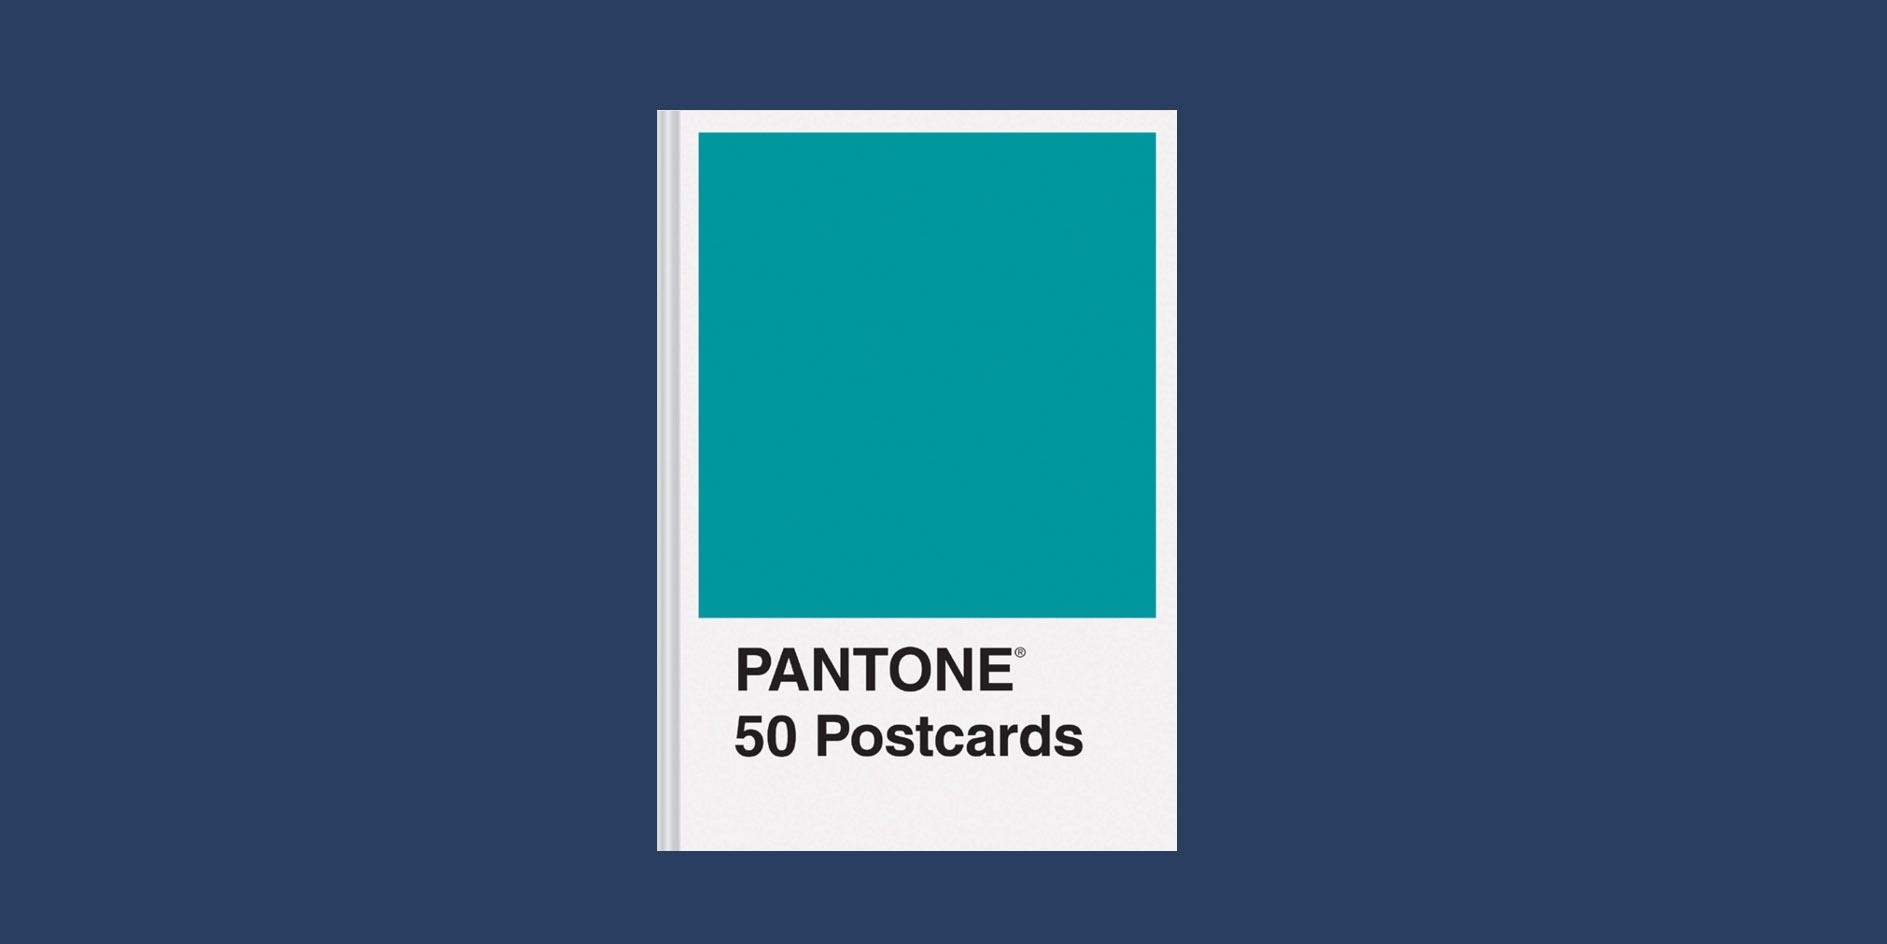 Mailing These Pantone Postcards Is the Most Design-Forward Way to Support the USPS